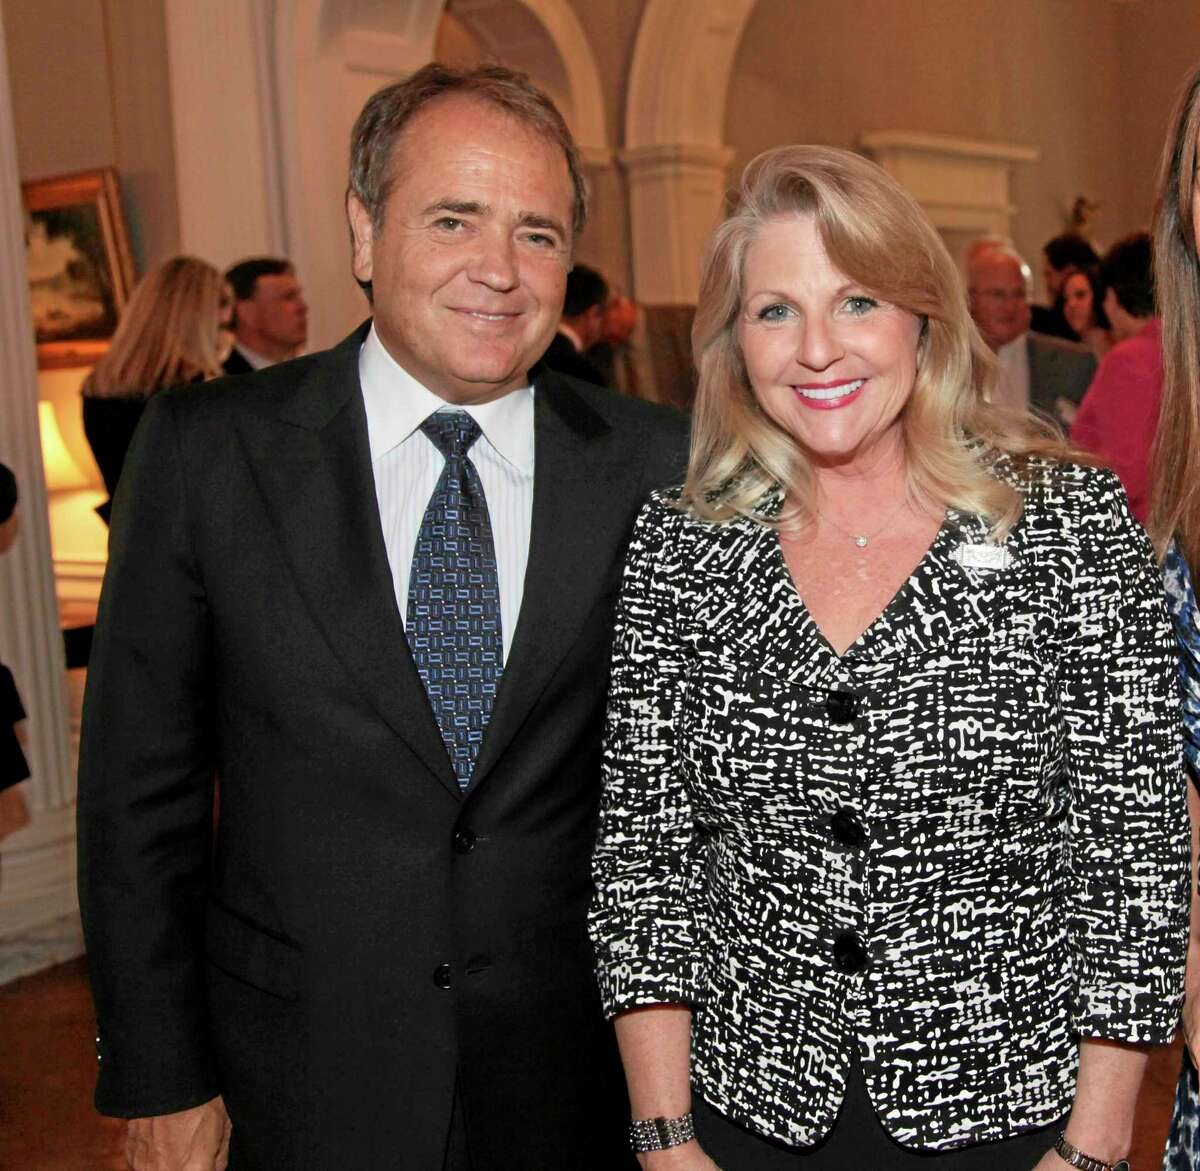 FILE - This May 5, 2011 file photo provided by the office of the Governor of Virginia shows Jonnie Williams left, and Maureen McDonnell, wife of then Gov. Bob McDonnell, during a reception for a NASCAR race at the Executive Mansion in Richmond, Va. Former Virginia Gov. Bob McDonnell and his wife were indicted Tuesday, Jan. 21, 2014, on corruption charges after a monthslong federal investigation into gifts the Republican received from Williams. (AP Photo/Office of the Governor of Virginia, Michele White, File)